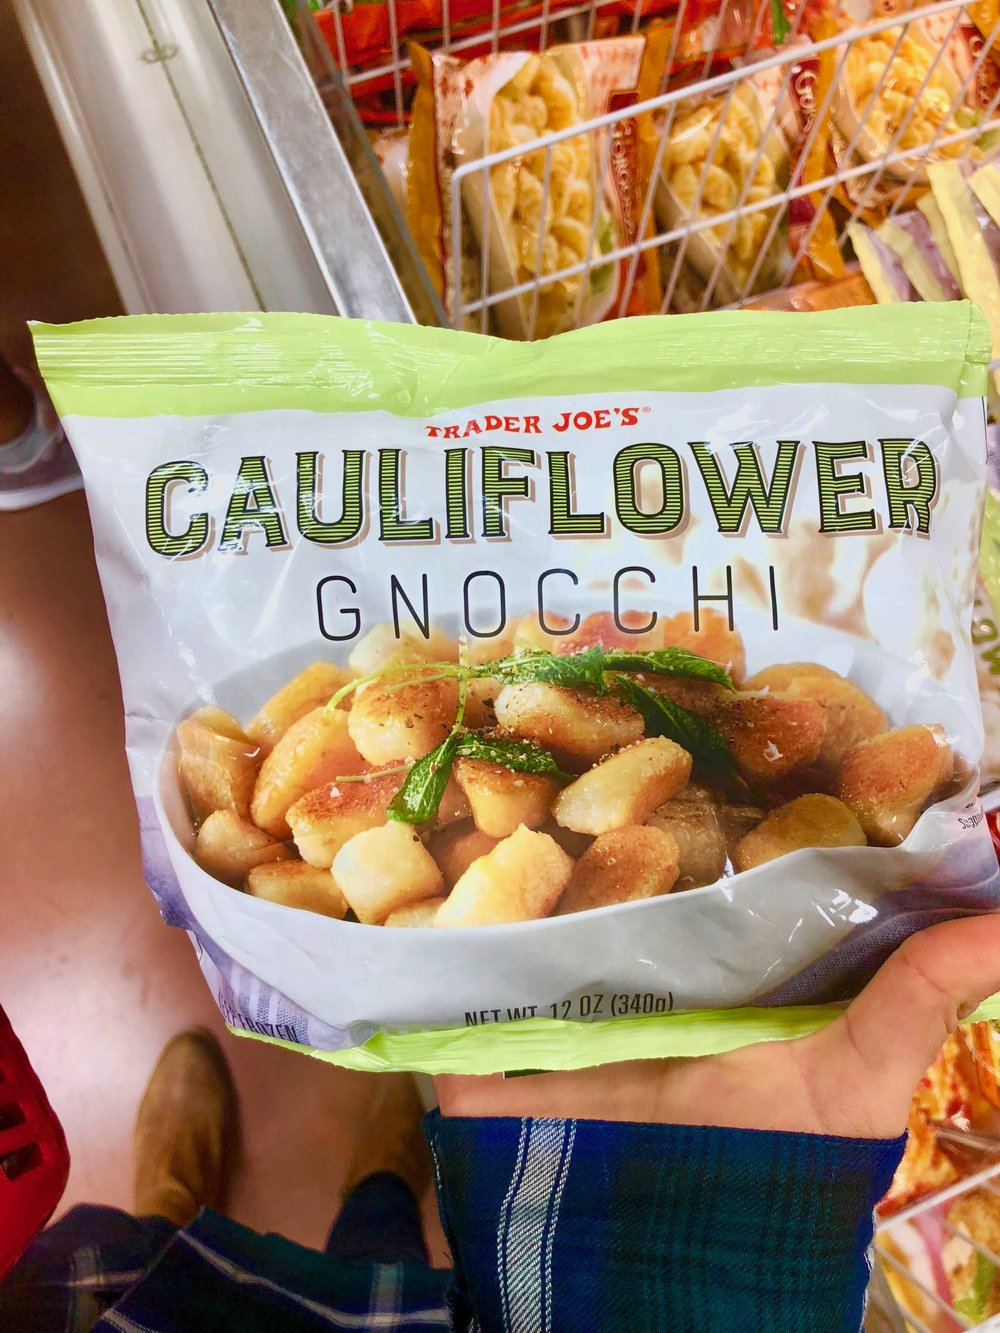 Any pasta lovers out there?? Well you've heard of cauliflower rice, cauliflower pizza crust, but what about gnocchi?? Probs not but this stuff is good!! Idk how they do it, but they make it work! Good low-calorie and low-carb alternative to pasta without really sacrificing flavor in my opinion.